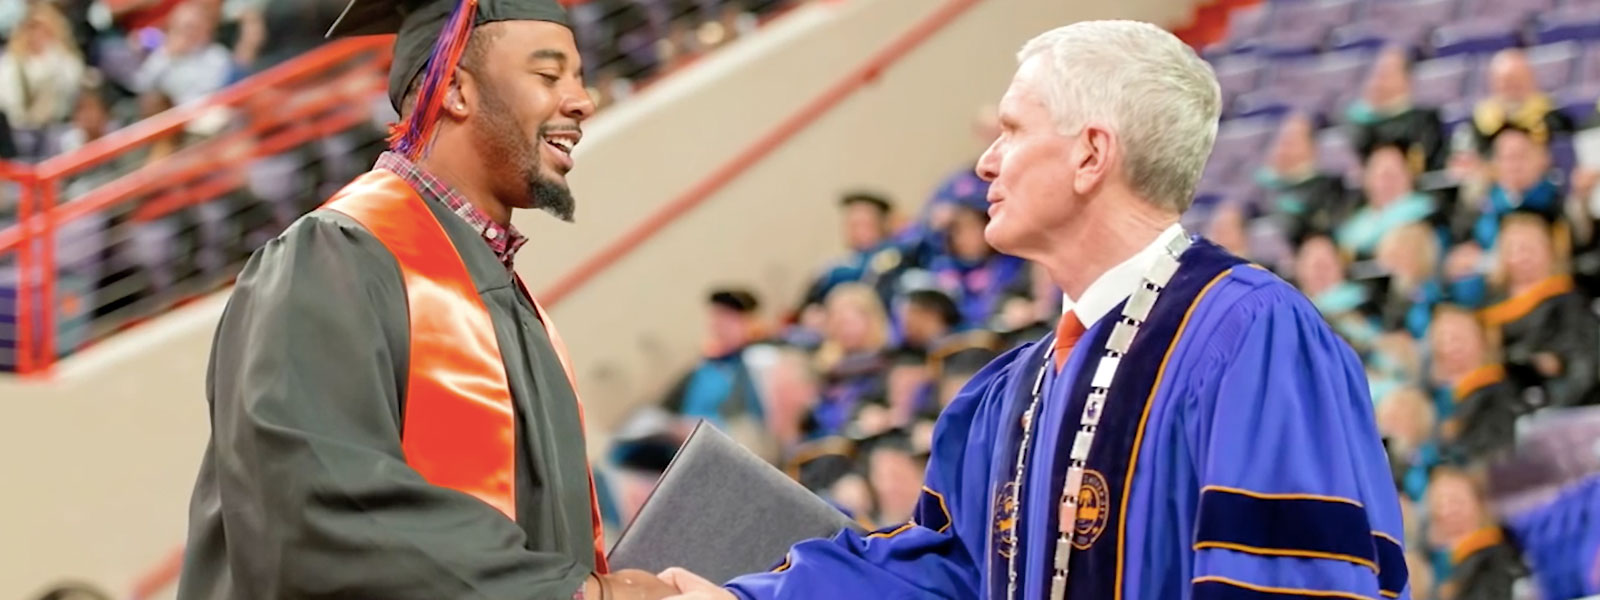 Faculty member hands student a diploma at graduation at Clemson University.